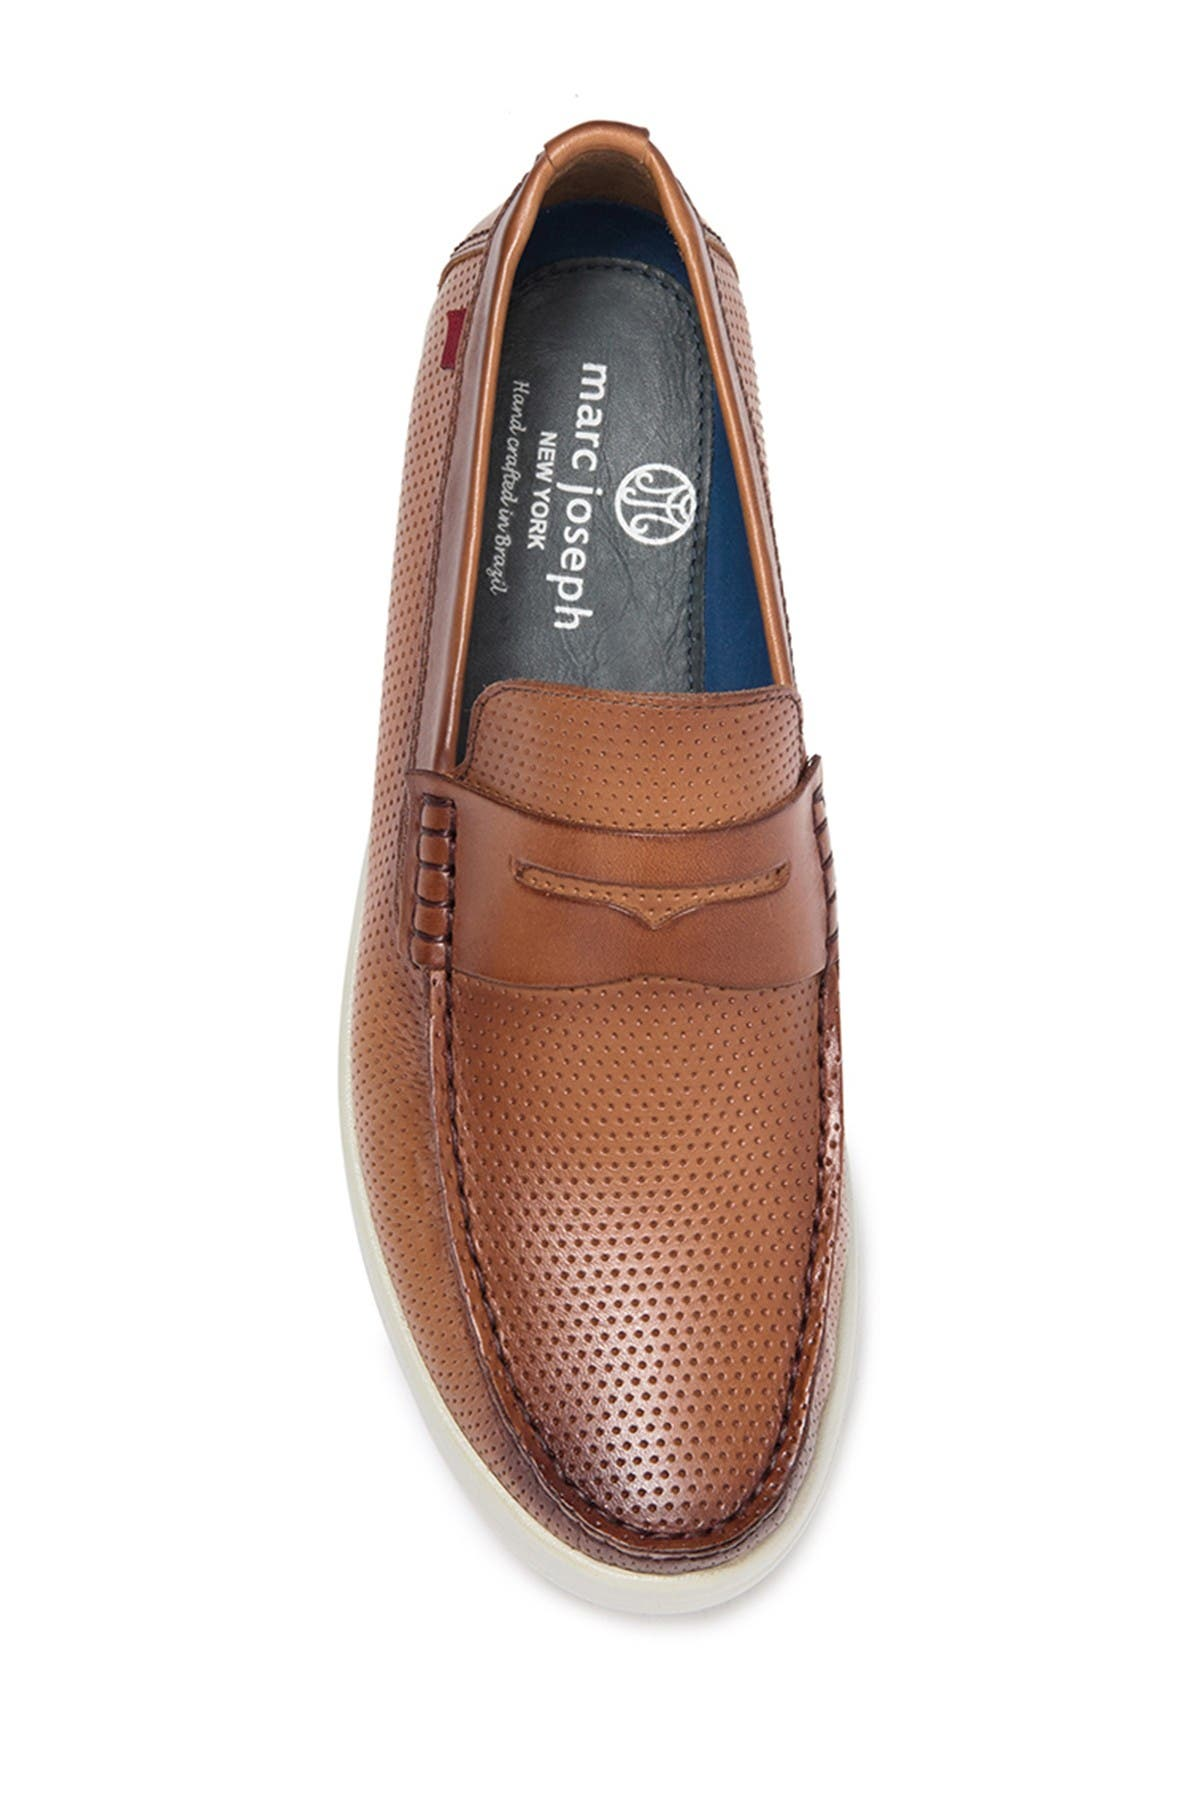 Image of Marc Joseph New York Southport Perforated Leather Penny Loafer